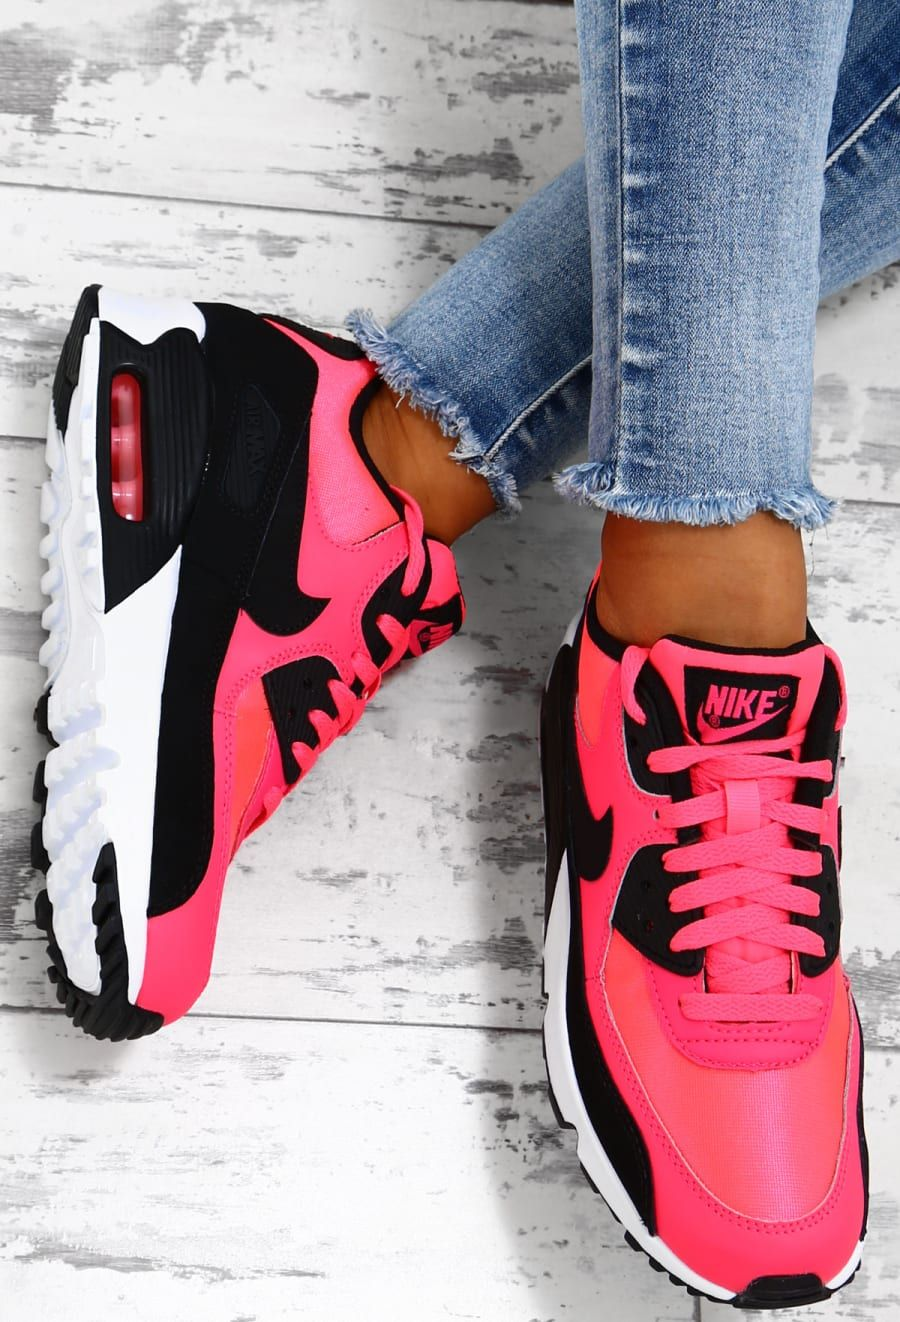 separation shoes 601d7 d1261 Nike Air Max 90 Pink and Black Trainers